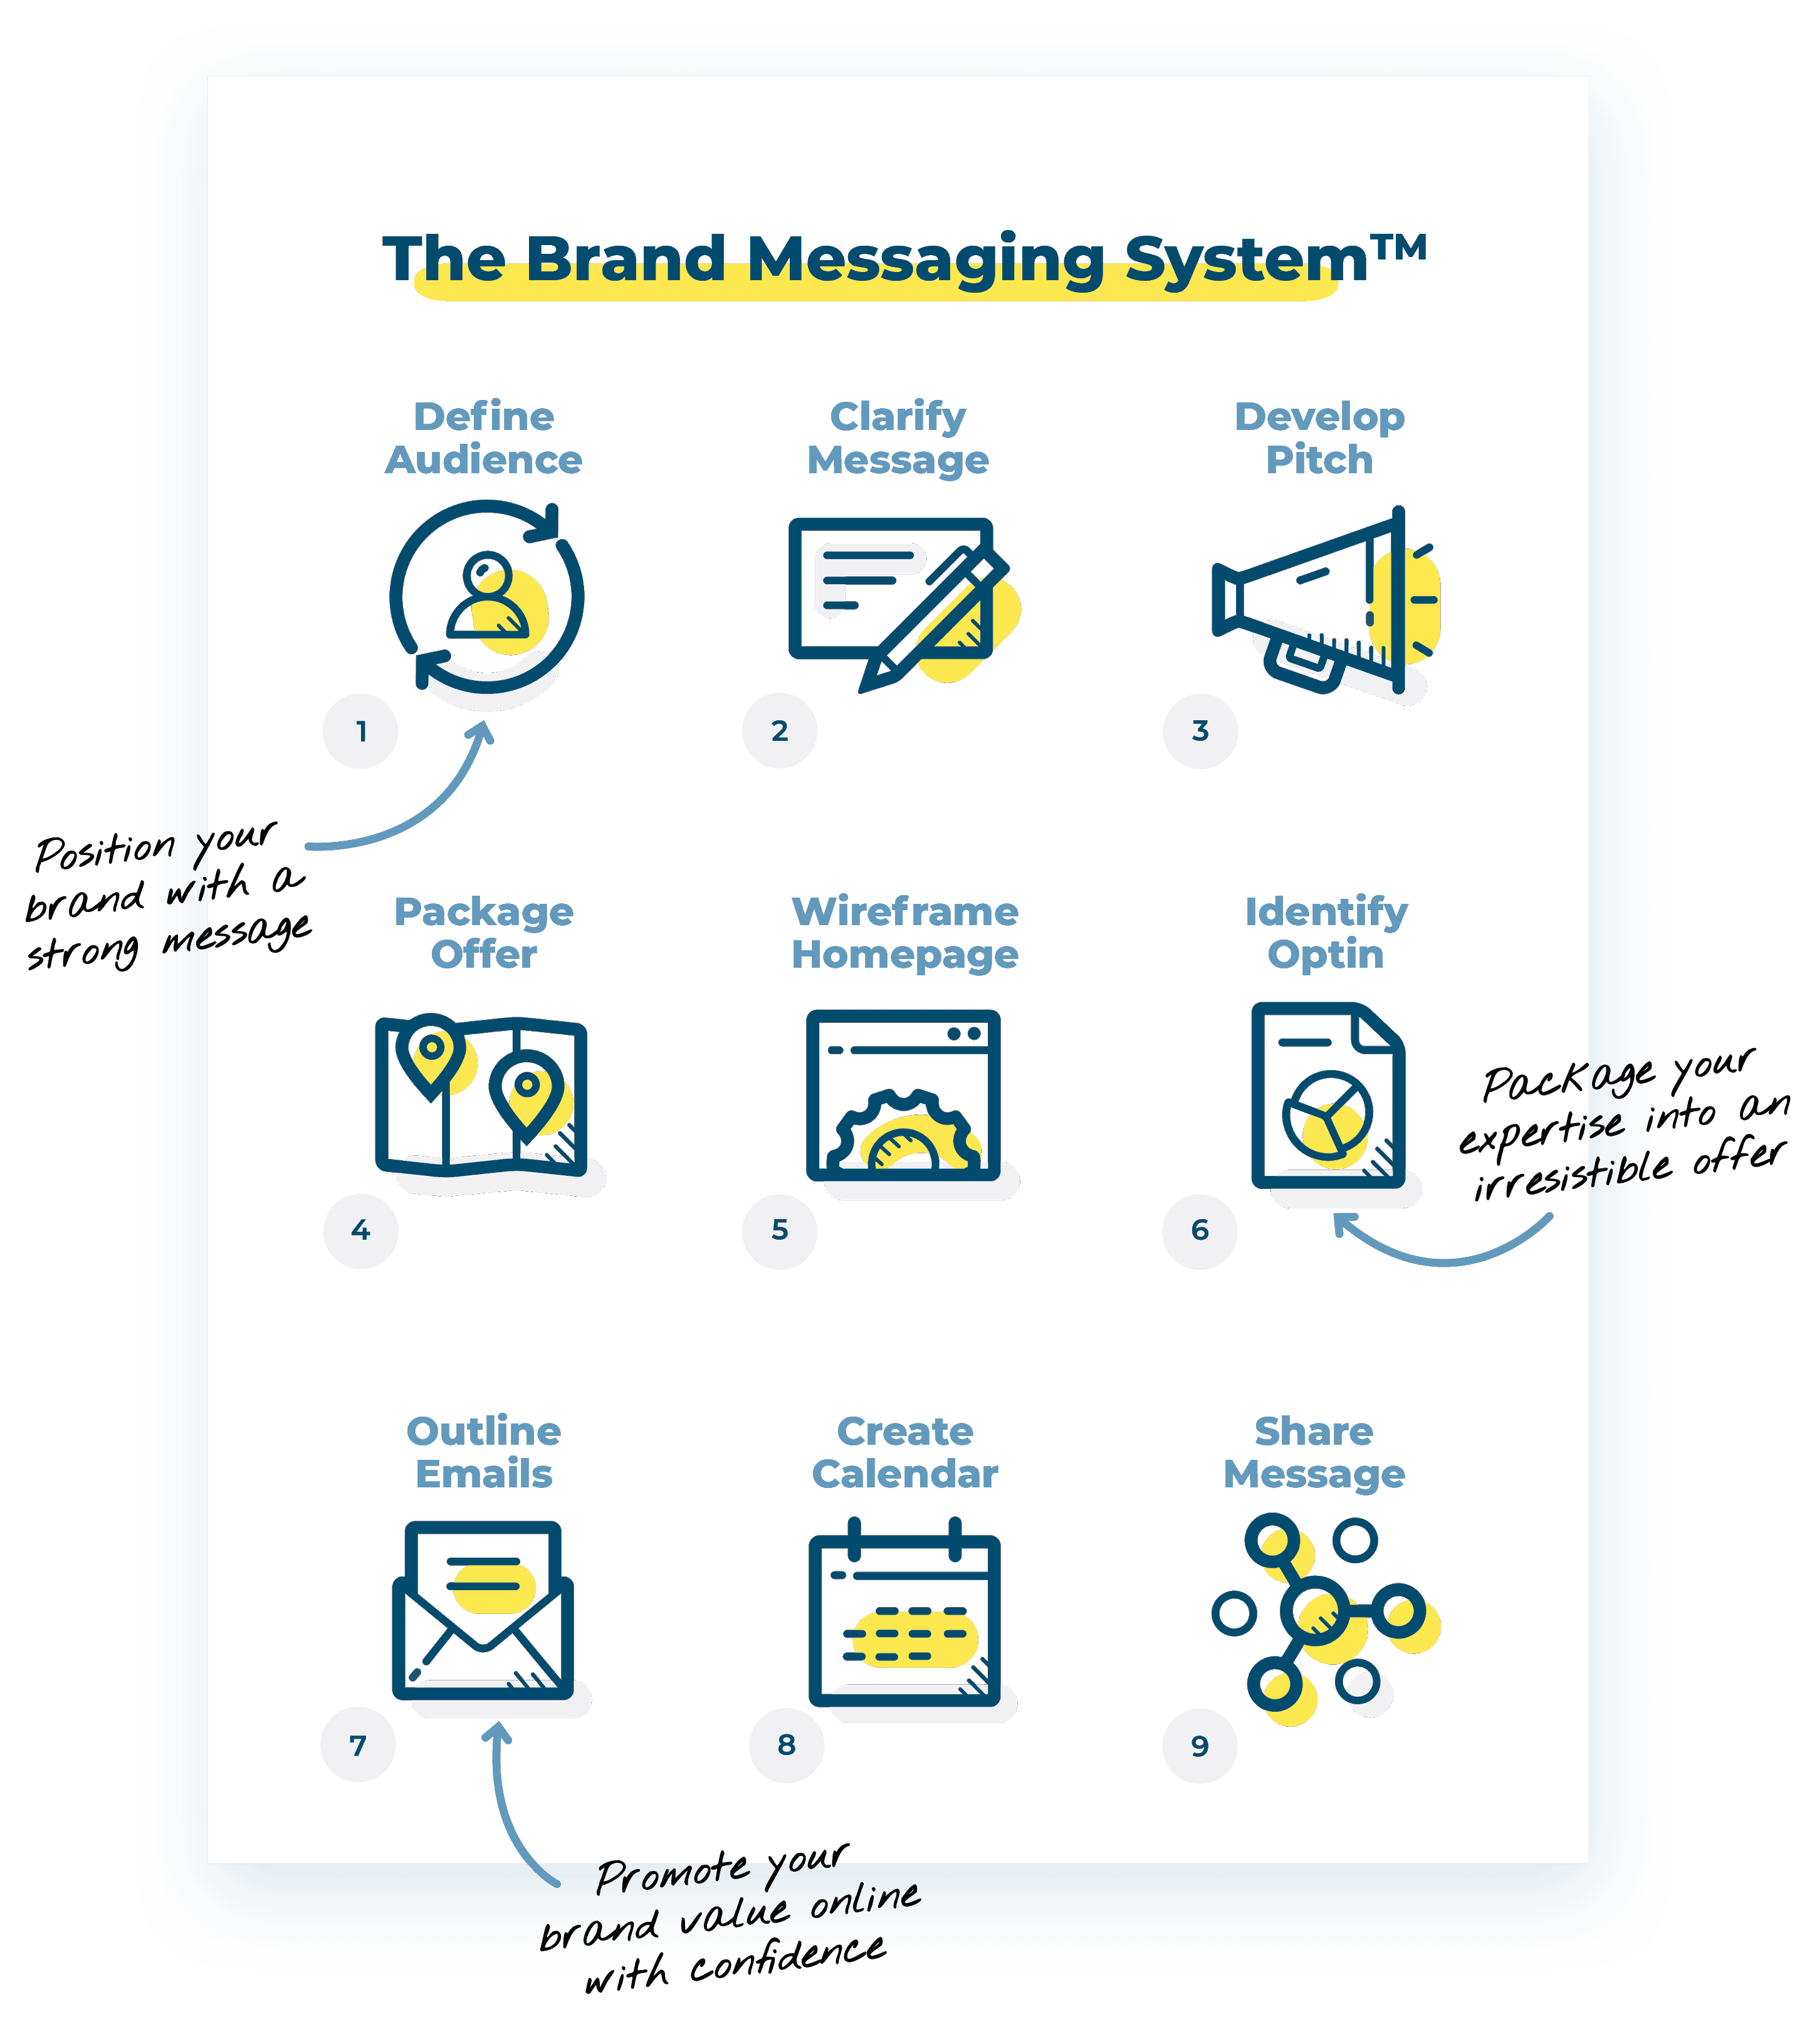 The Brand Messaging System